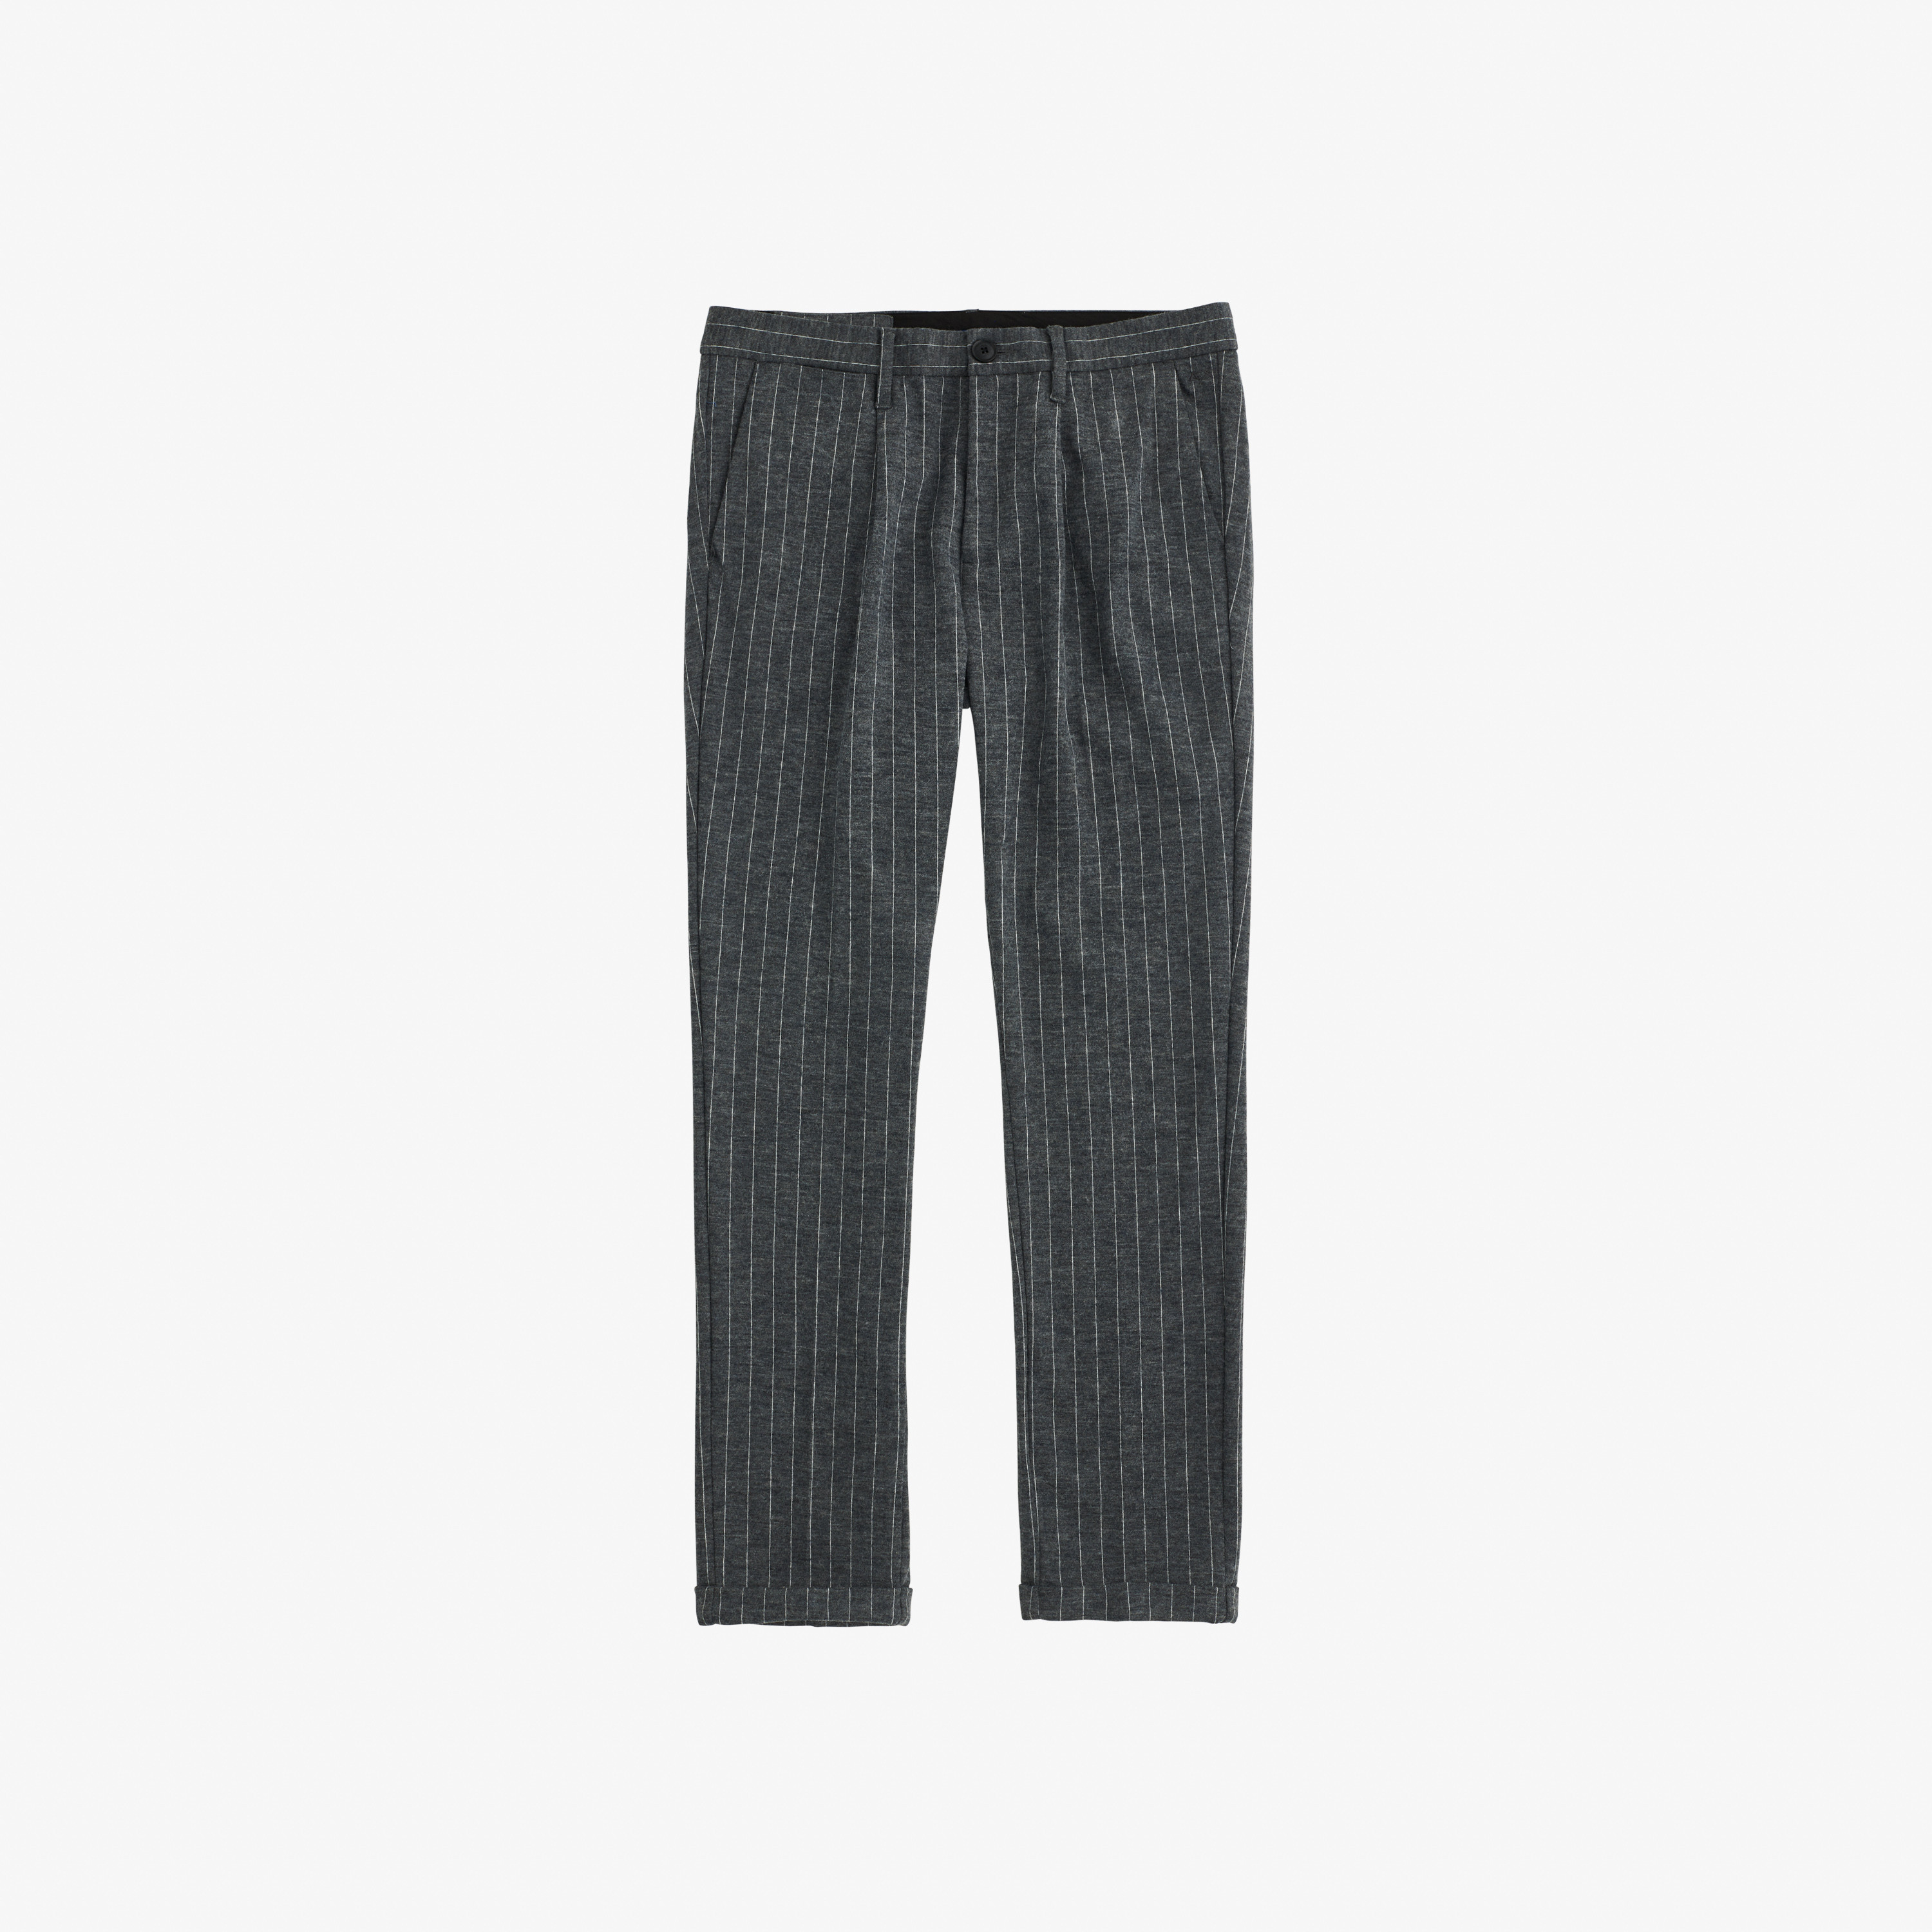 WOOL PANT PENCE MEDIUM GREY